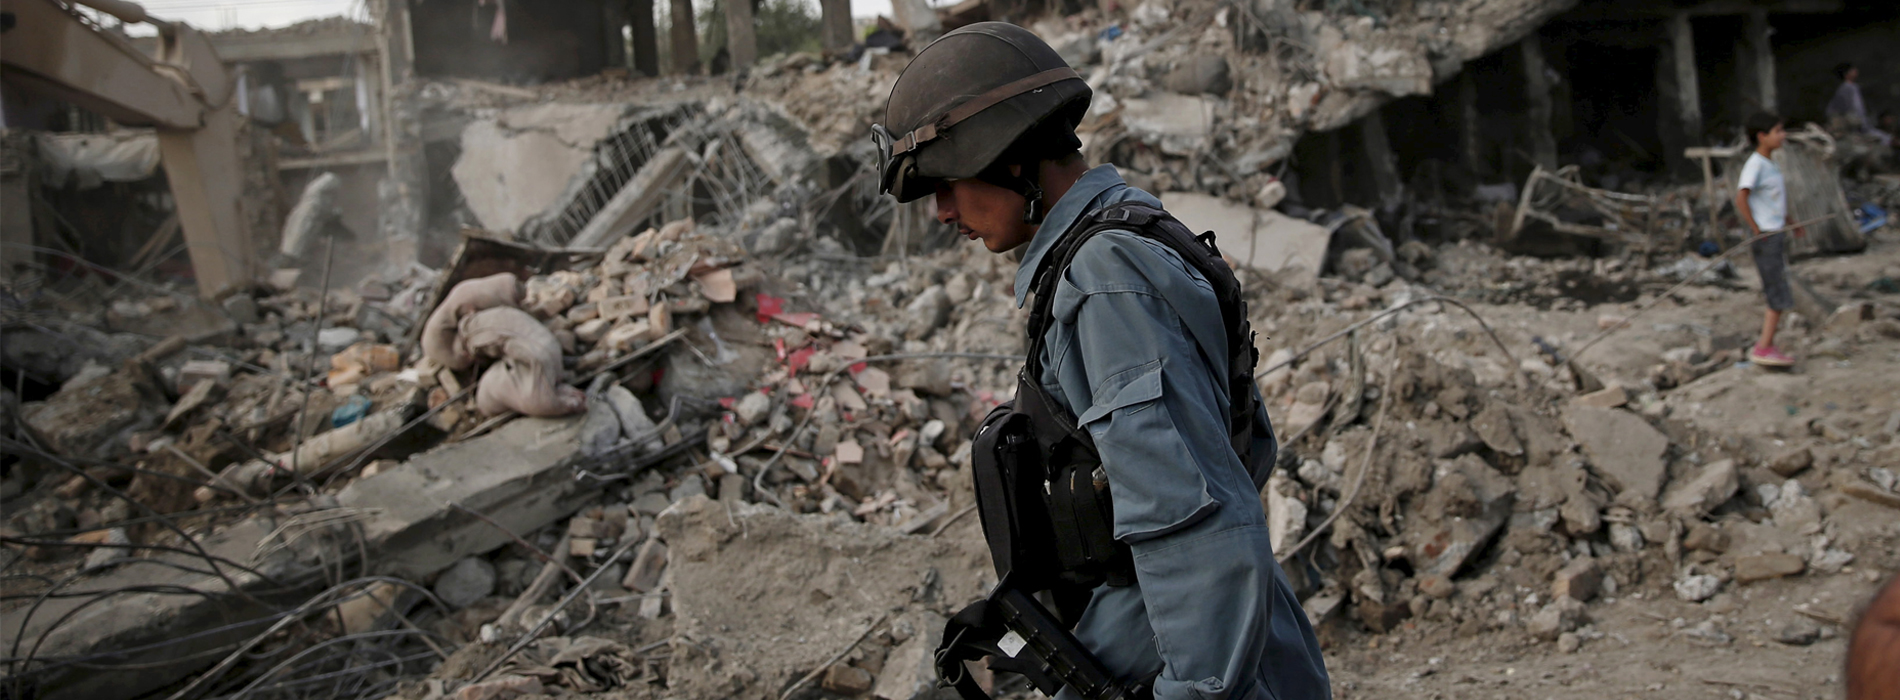 Afghan policeman walks at the site a truck bomb blast in Kabul, August 7, 2015. A truck bomb exploded near an army compound in Kabul on Friday, killing at least 15 people and wounding another 248, police and government officials said, in the first major attack in the Afghan capital since the Taliban announced a new leader. REUTERS/Ahmad Masood